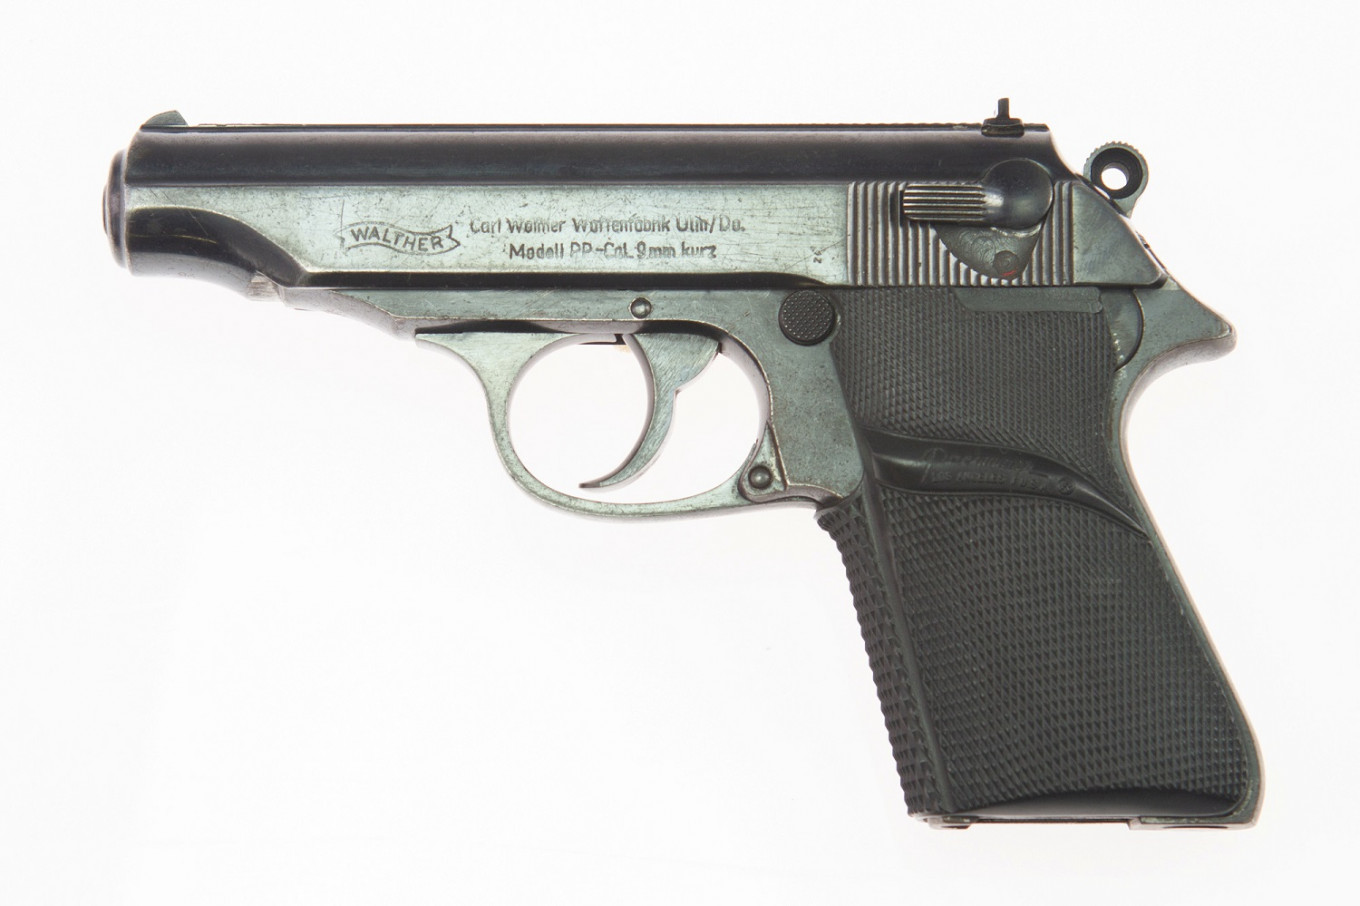 Sean Connery's 007 pistol from 'Dr.No' sells for $256,000